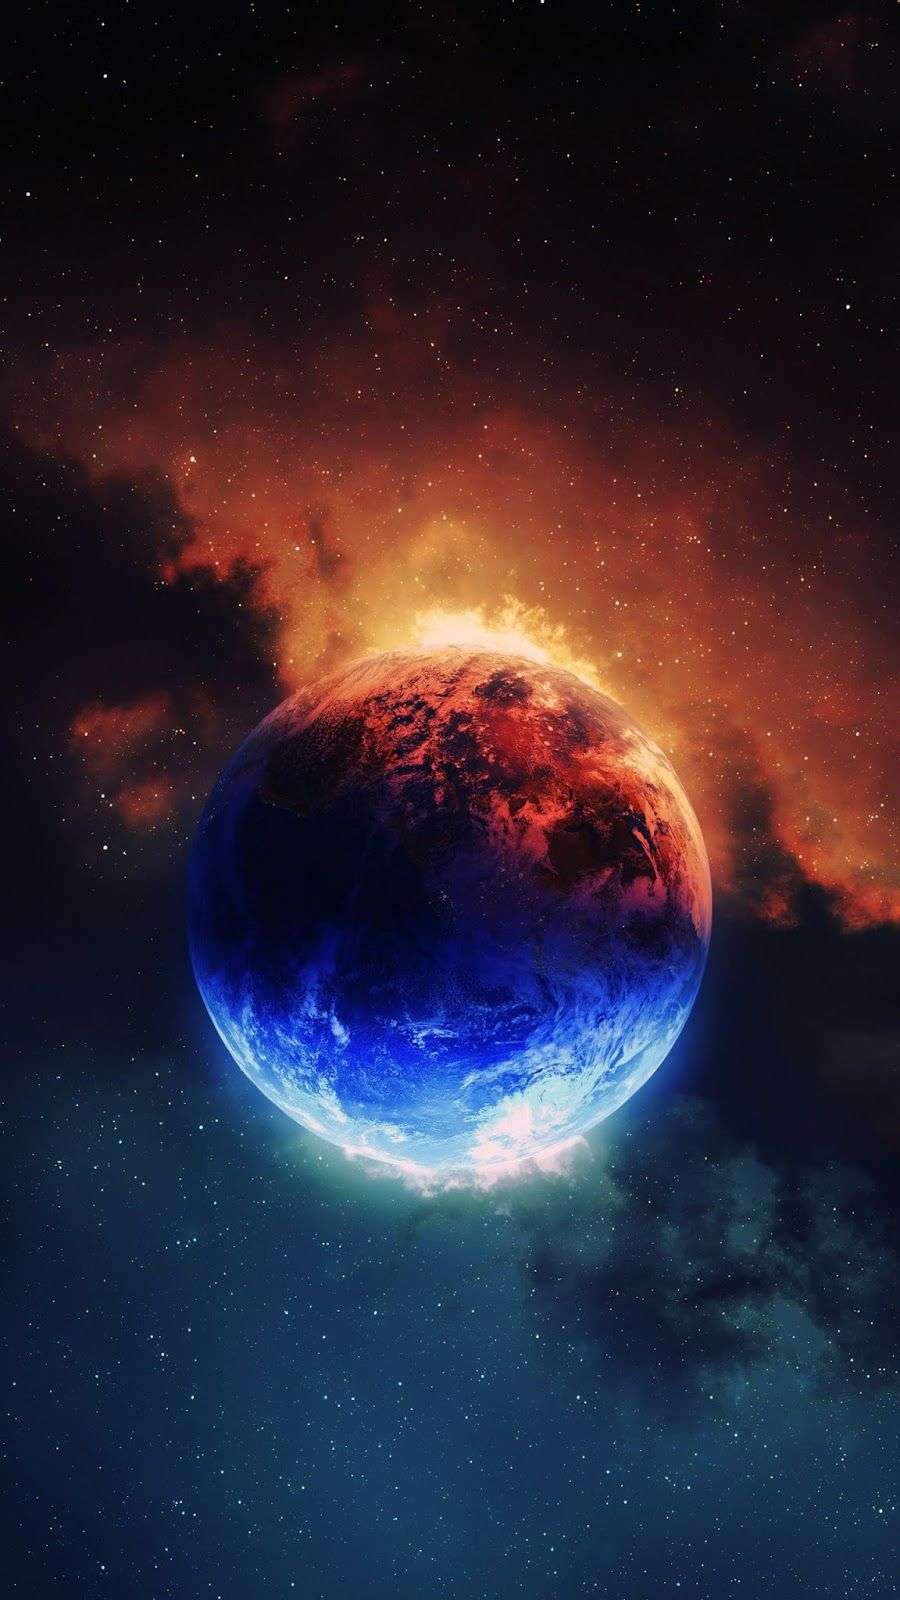 Red And Blue Wallpaper Iphone Android Planets Wallpaper Galaxy Wallpaper Galaxy Art